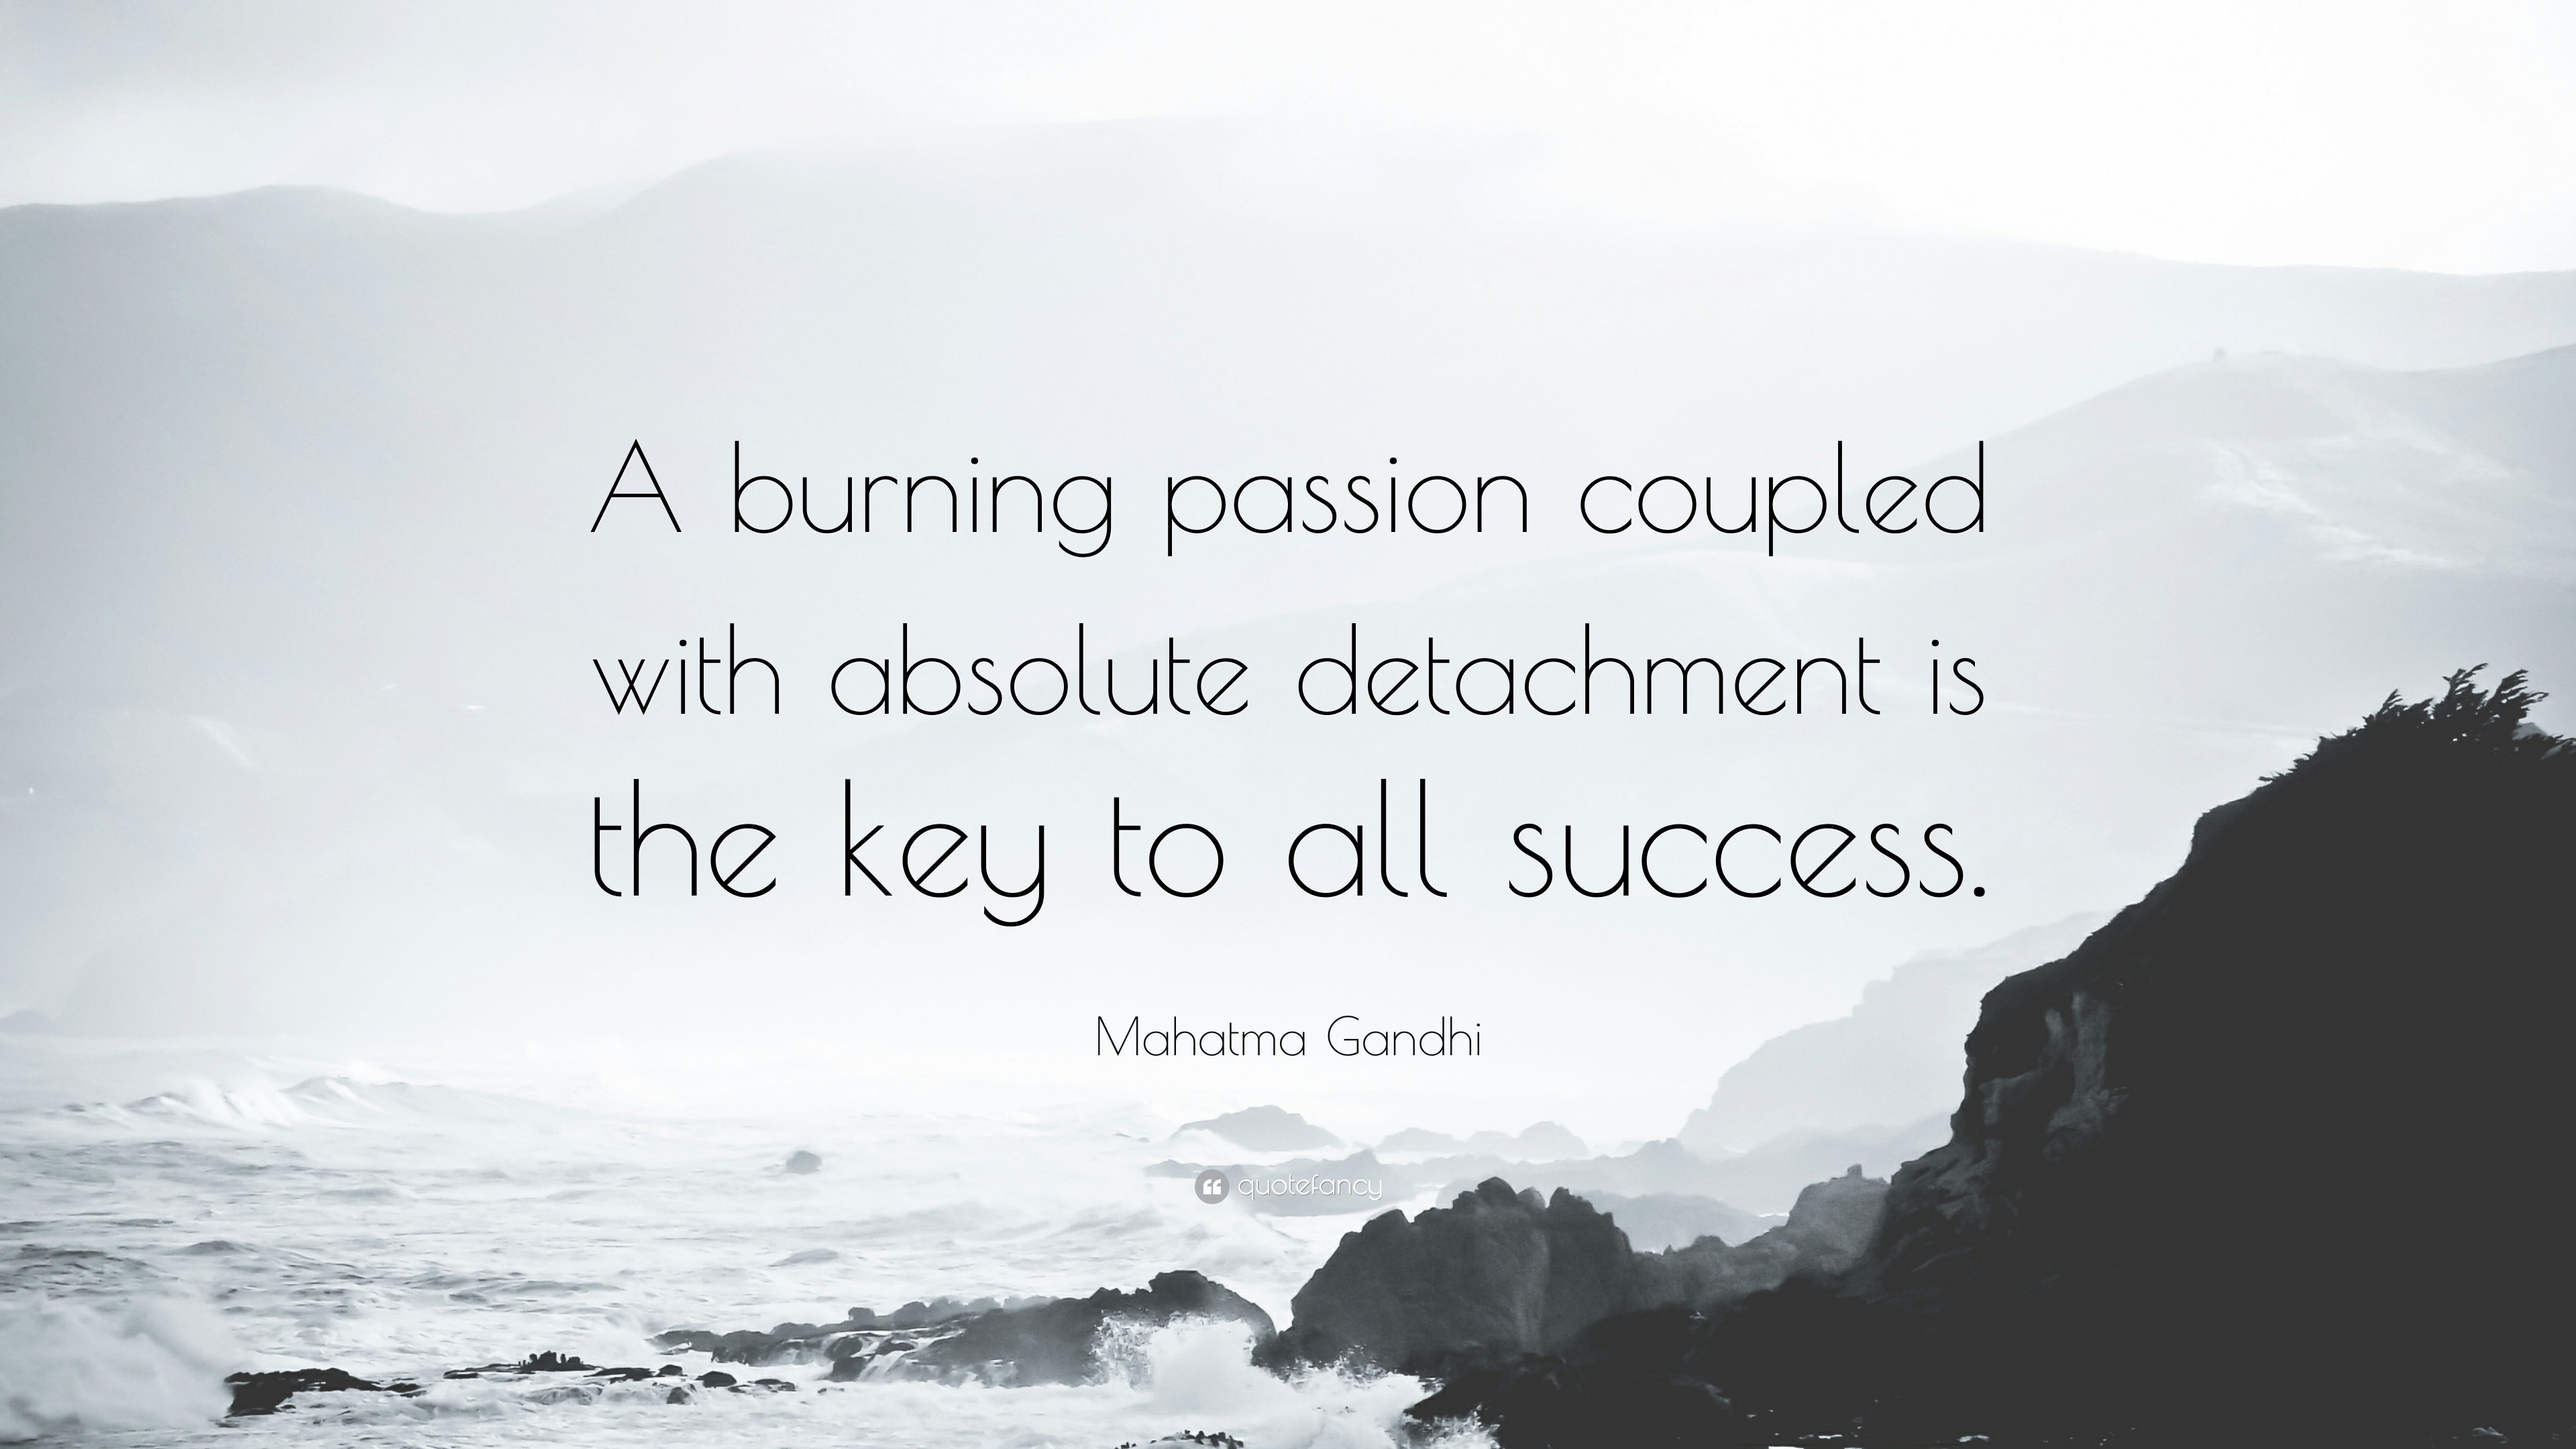 1989776-Mahatma-Gandhi-Quote-A-burning-passion-coupled-with-absolute